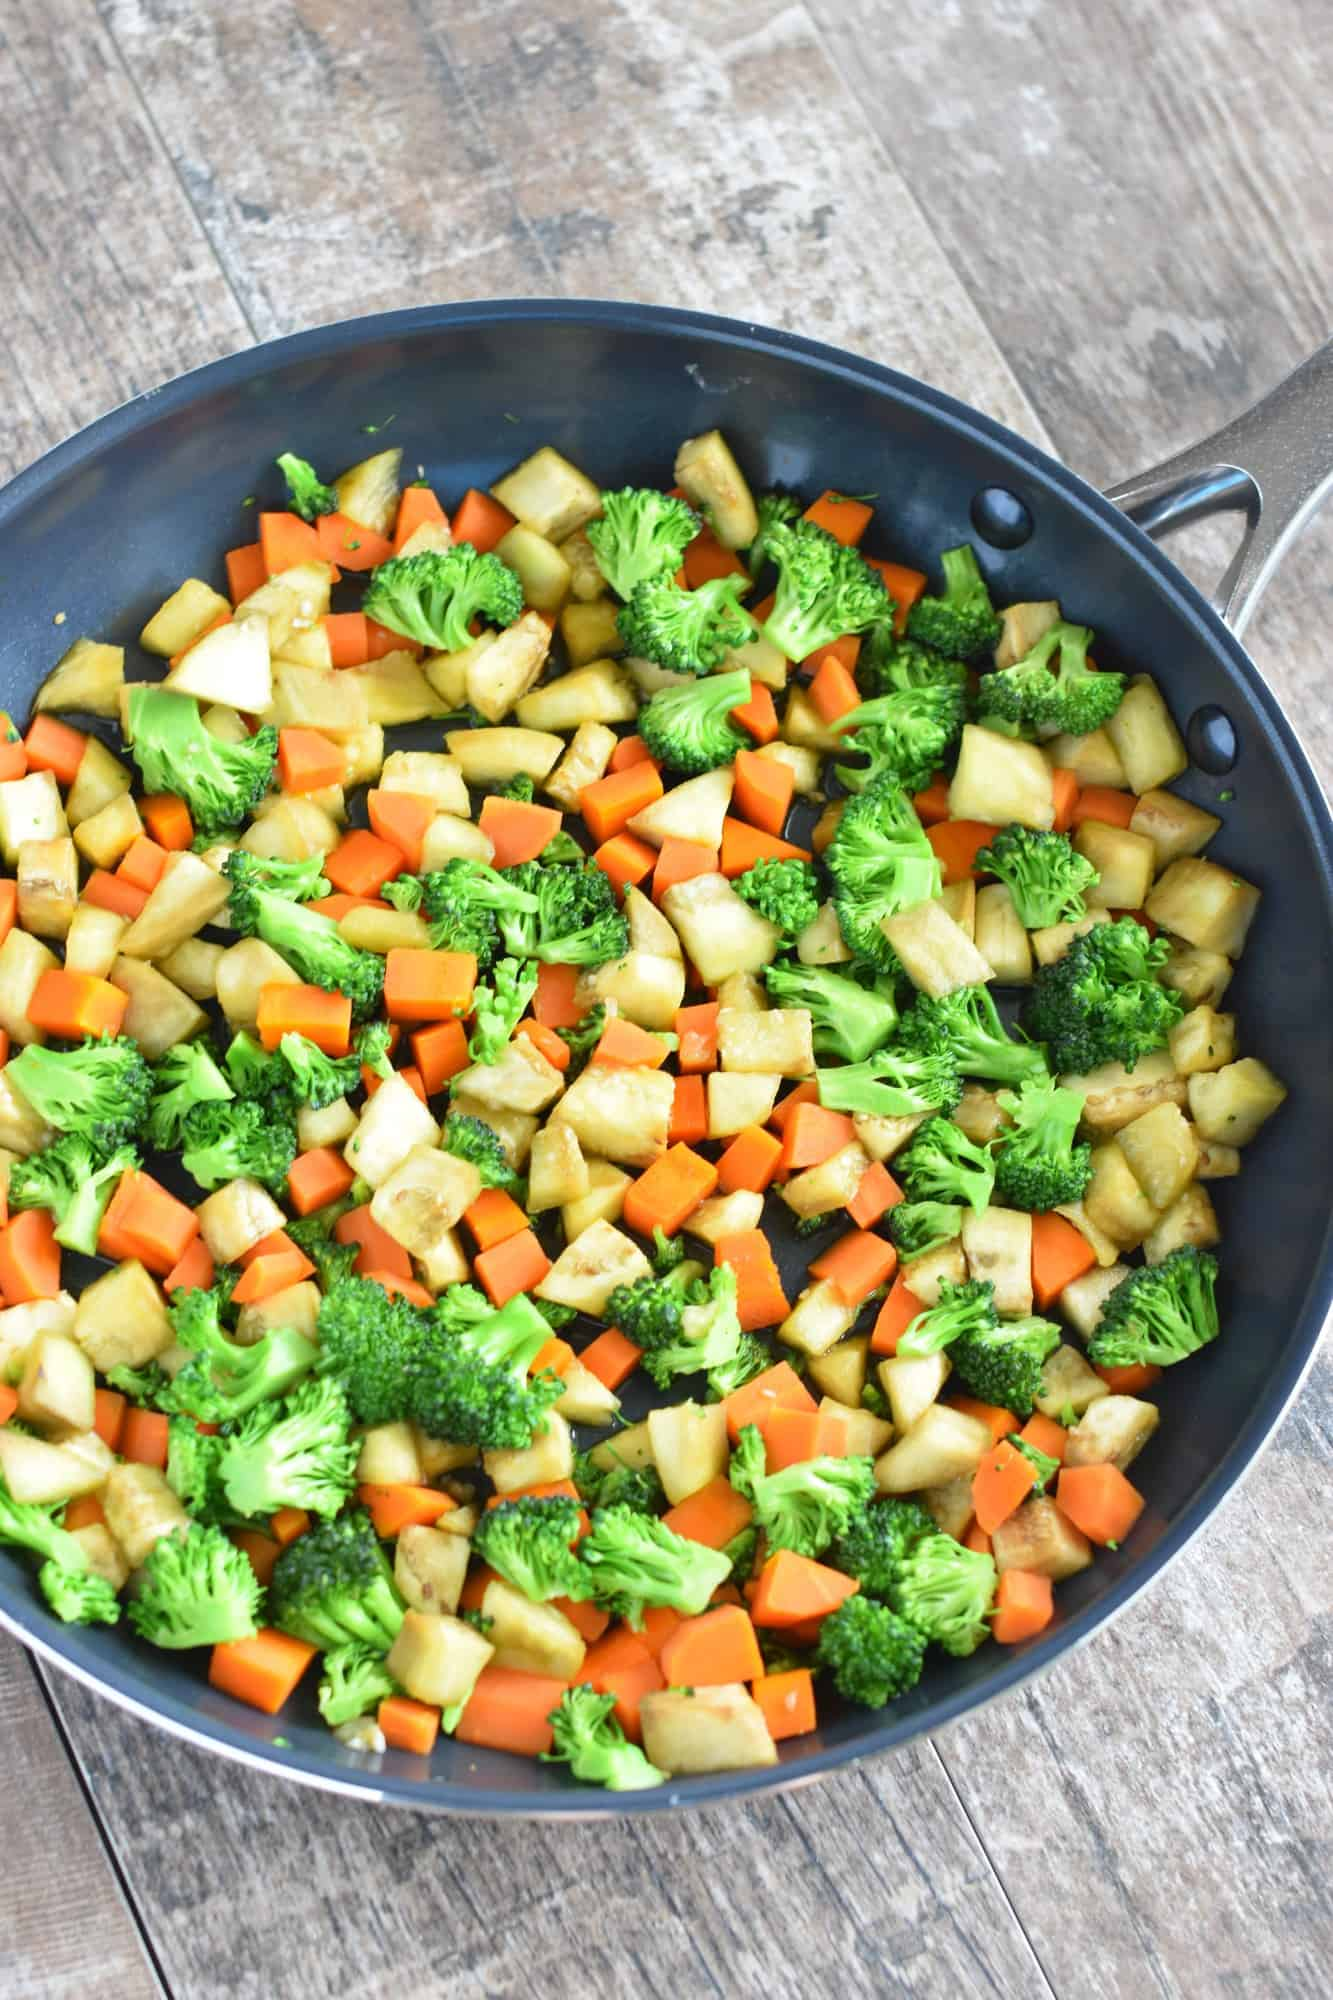 sauteed broccoli, eggplant and carrots in the skillet